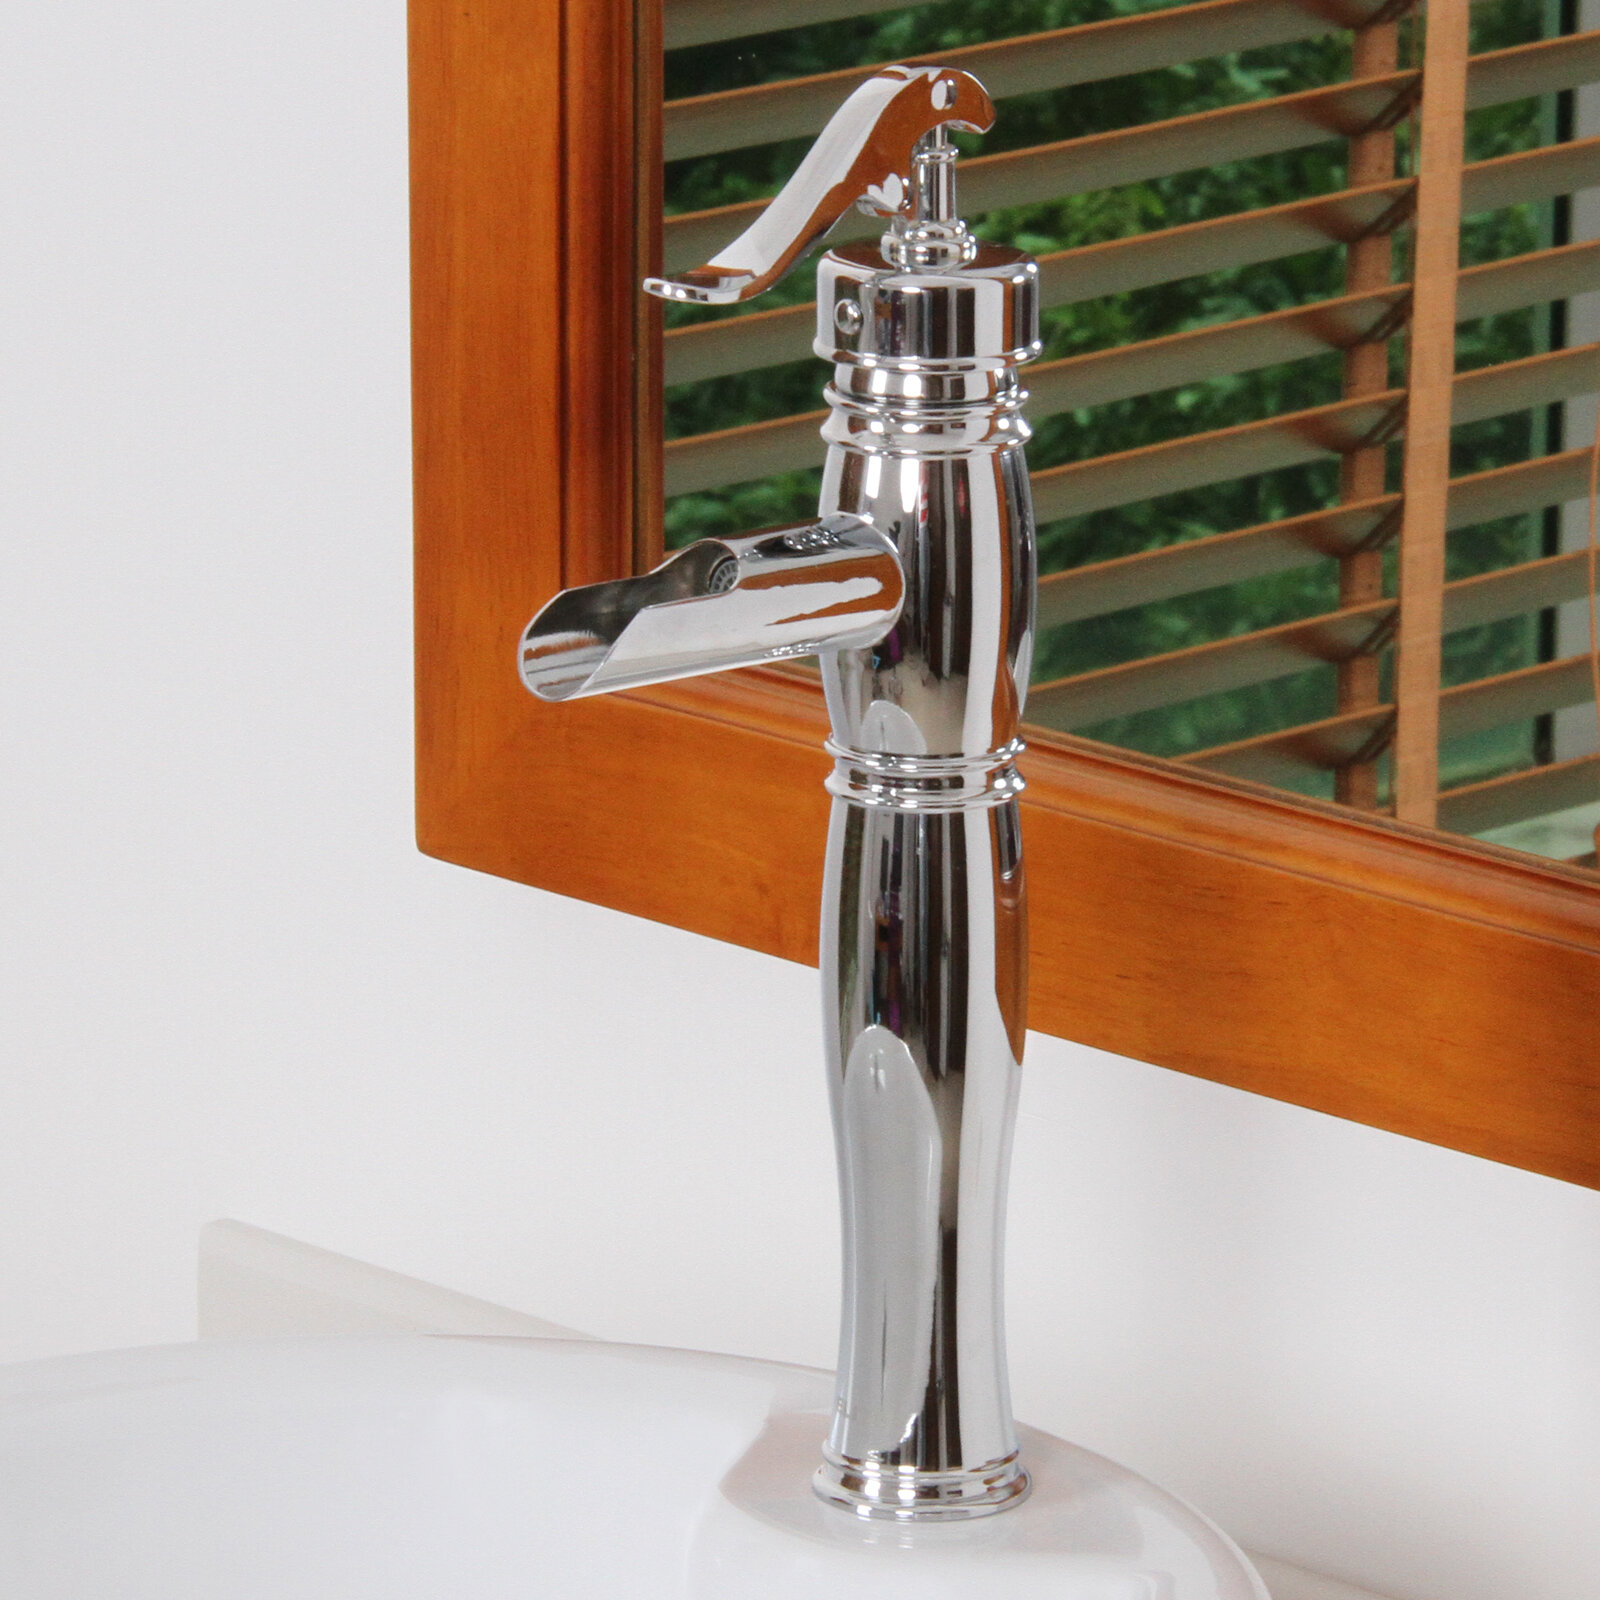 Elite Vintage Bathroom Water Pump Faucet & Reviews | Wayfair